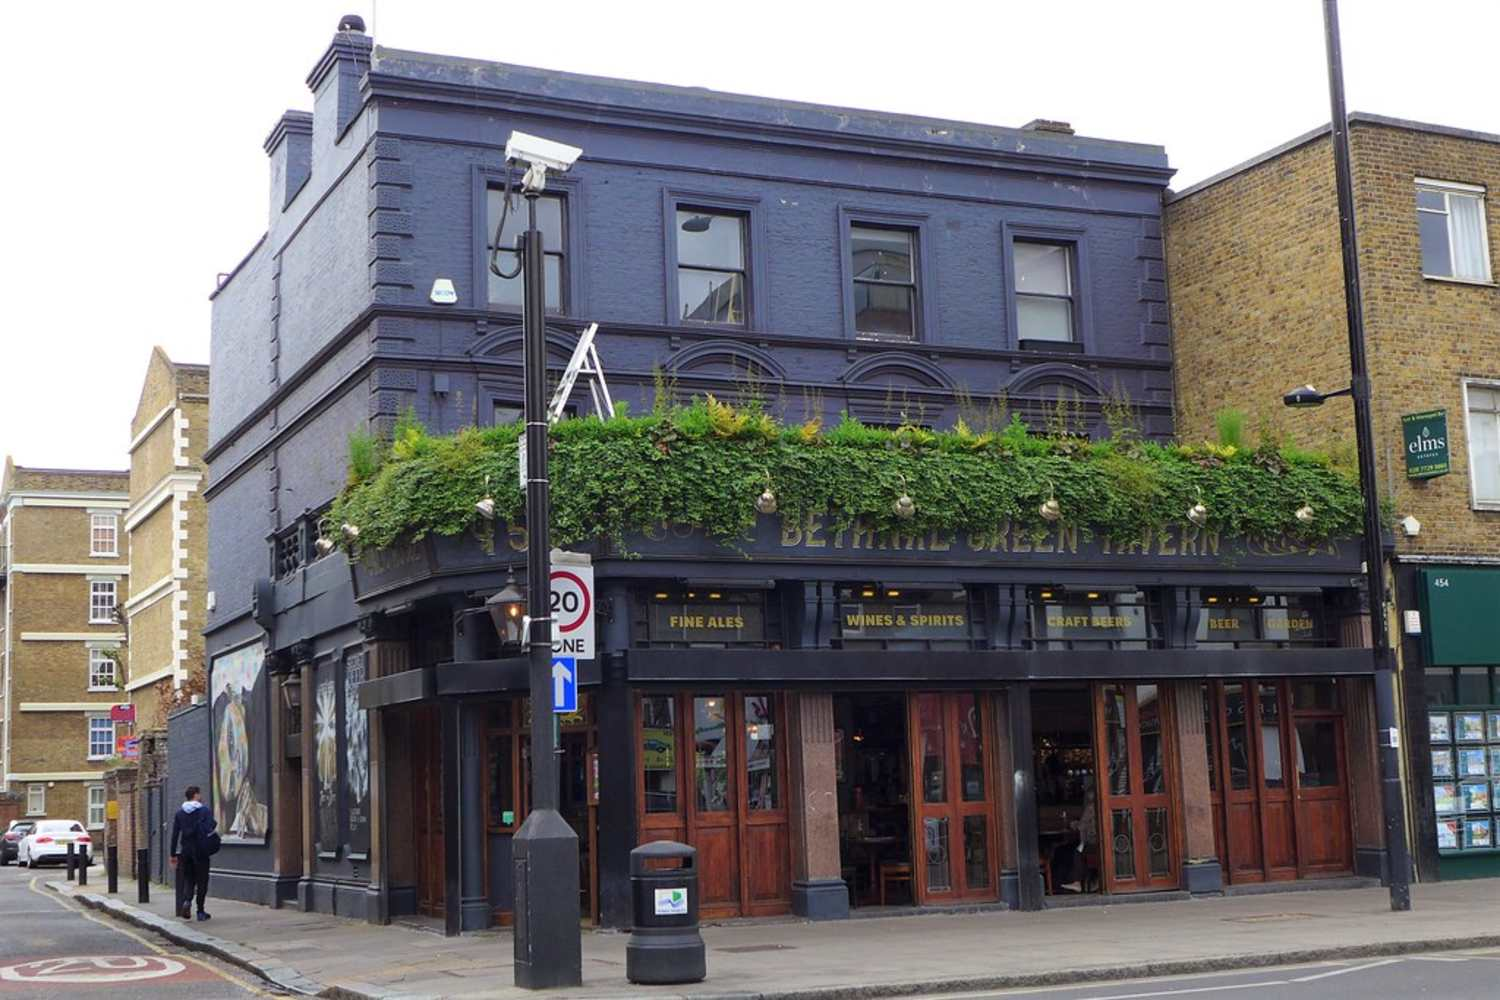 The front of Bethnal Green Tavern